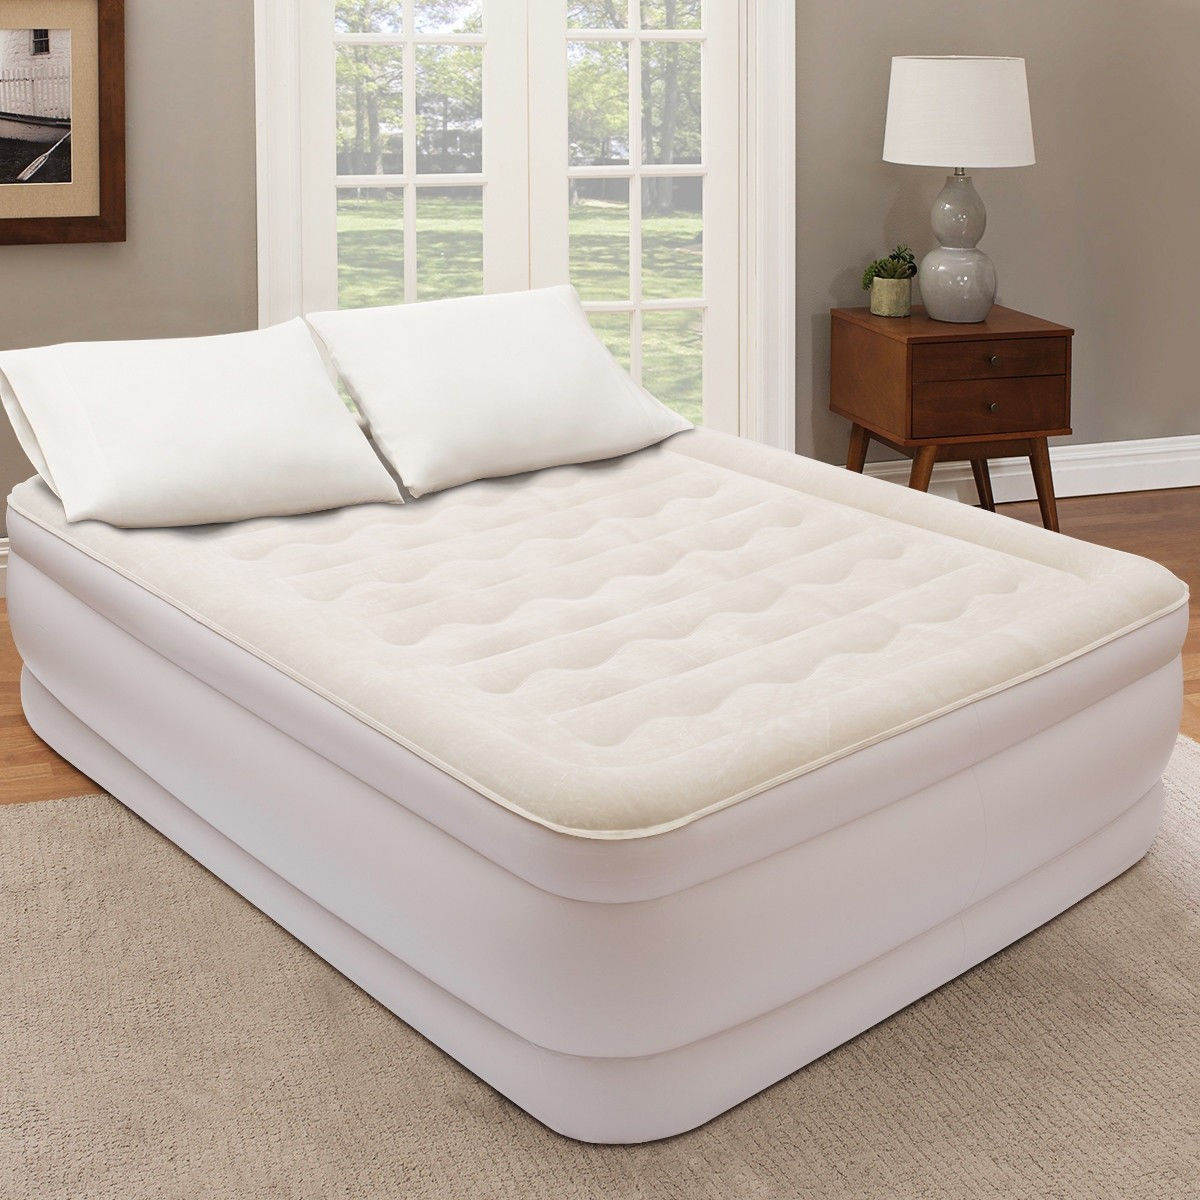 Housse De Canapé Shabby Chic inflatable airbed twin size luxury top raised with electric